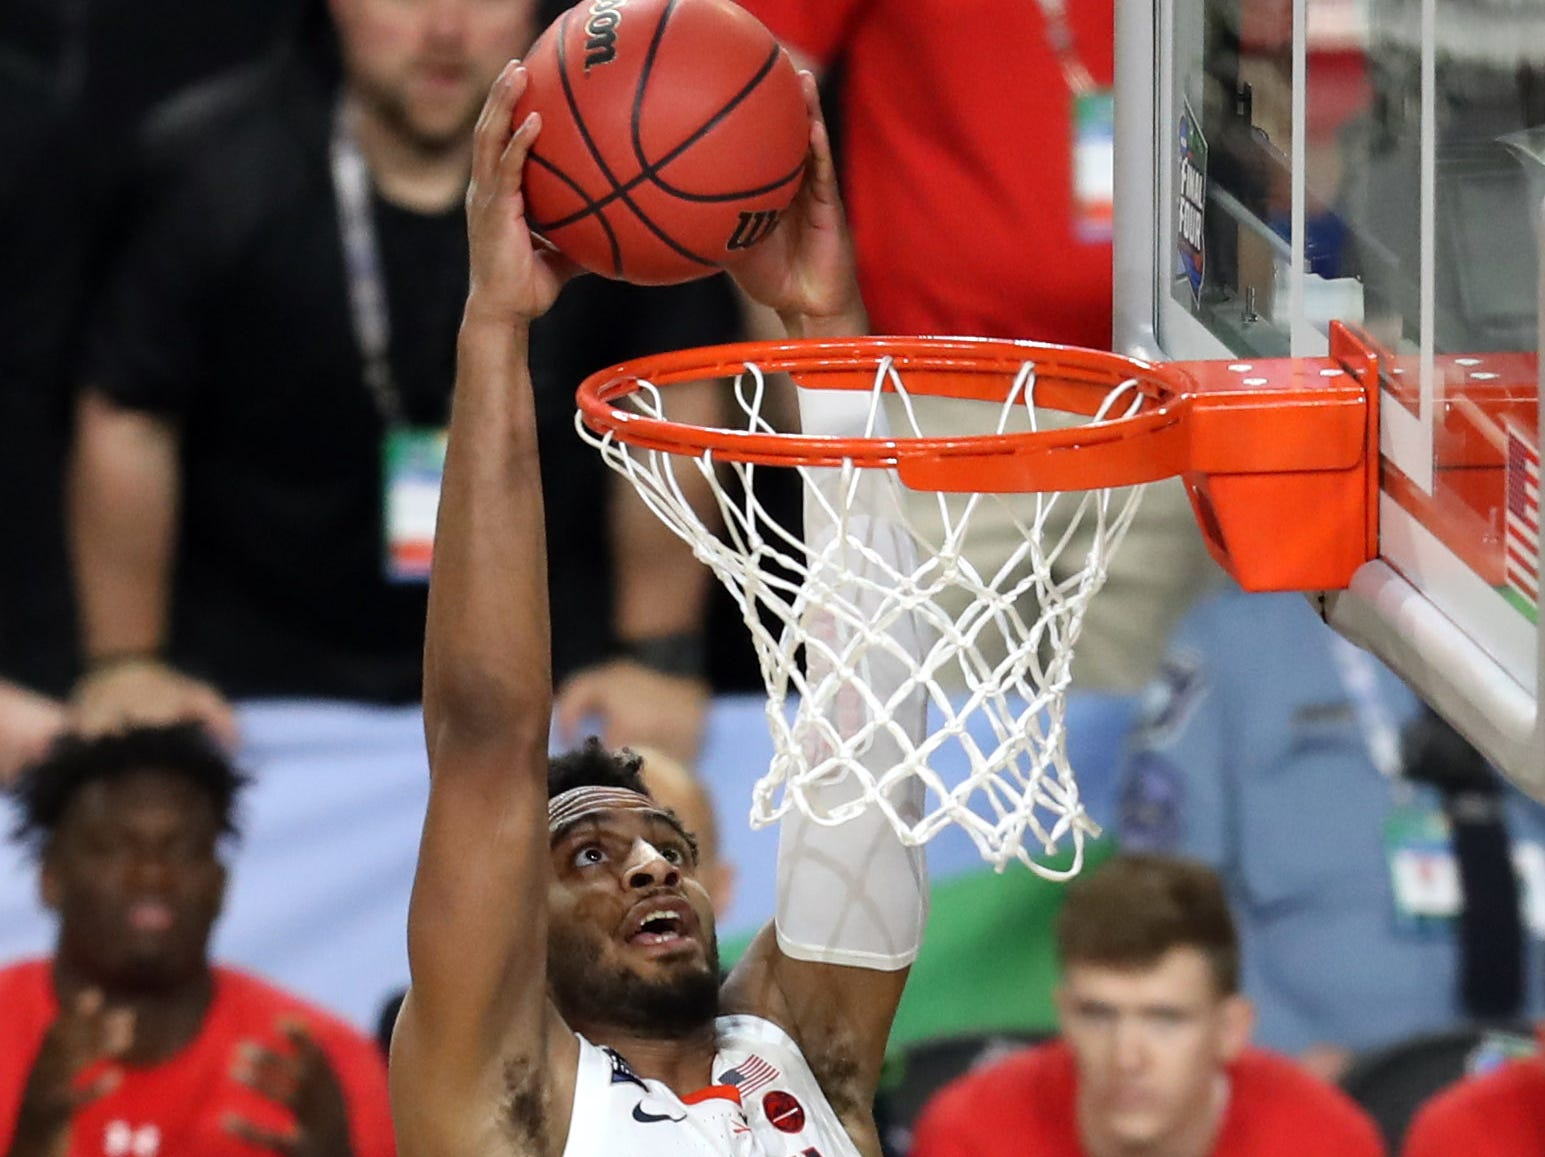 Apr 8, 2019; Minneapolis, MN, USA; Virginia Cavaliers guard Braxton Key (2) dunks the ball against the Texas Tech Red Raiders during the first half in the championship game of the 2019 men's Final Four at US Bank Stadium. Mandatory Credit: Brace Hemmelgarn-USA TODAY Sports